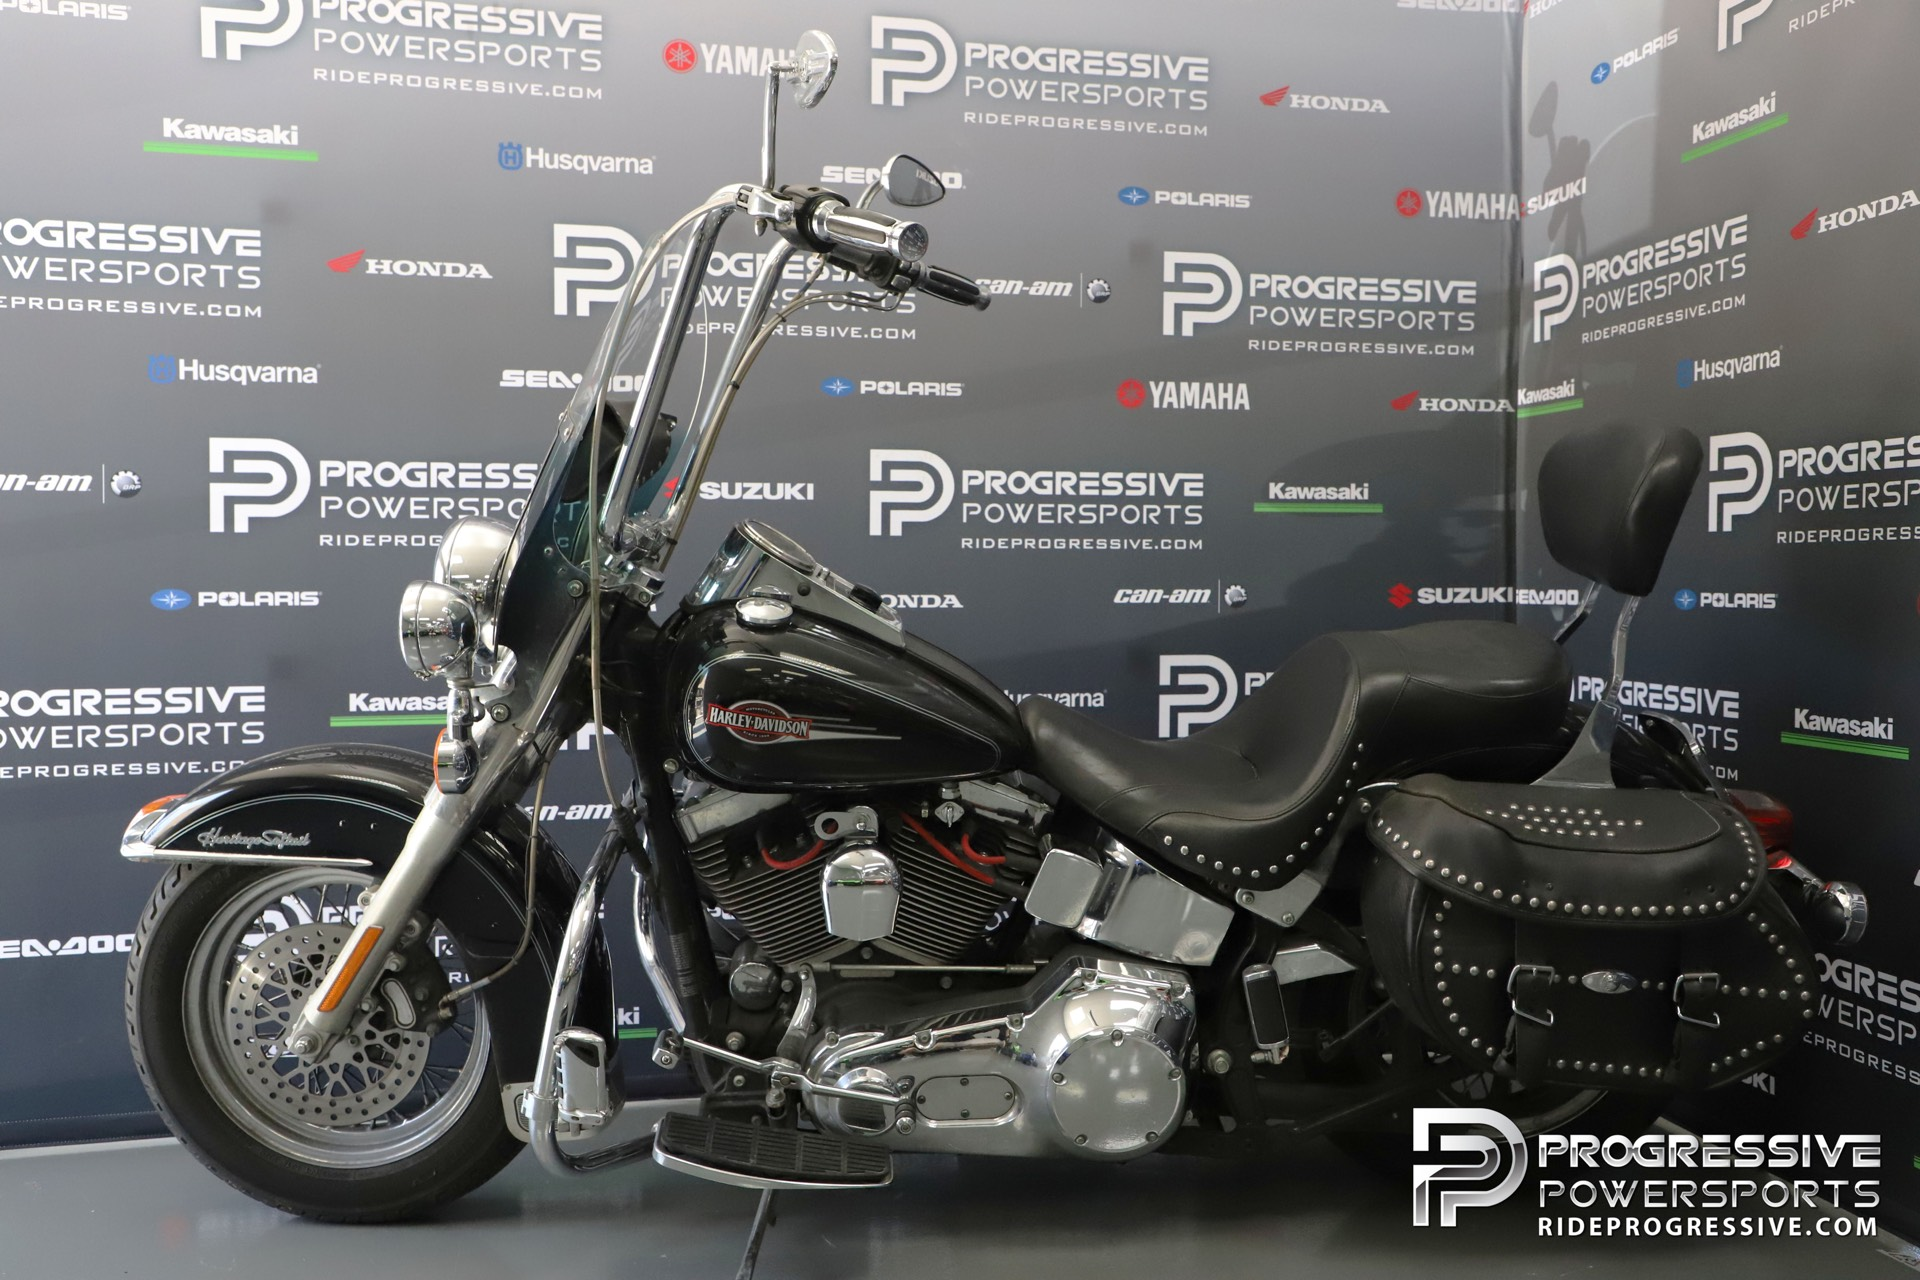 2005 Harley-Davidson HERITAGE SOFTAIL CLASSIC in Arlington, Texas - Photo 16